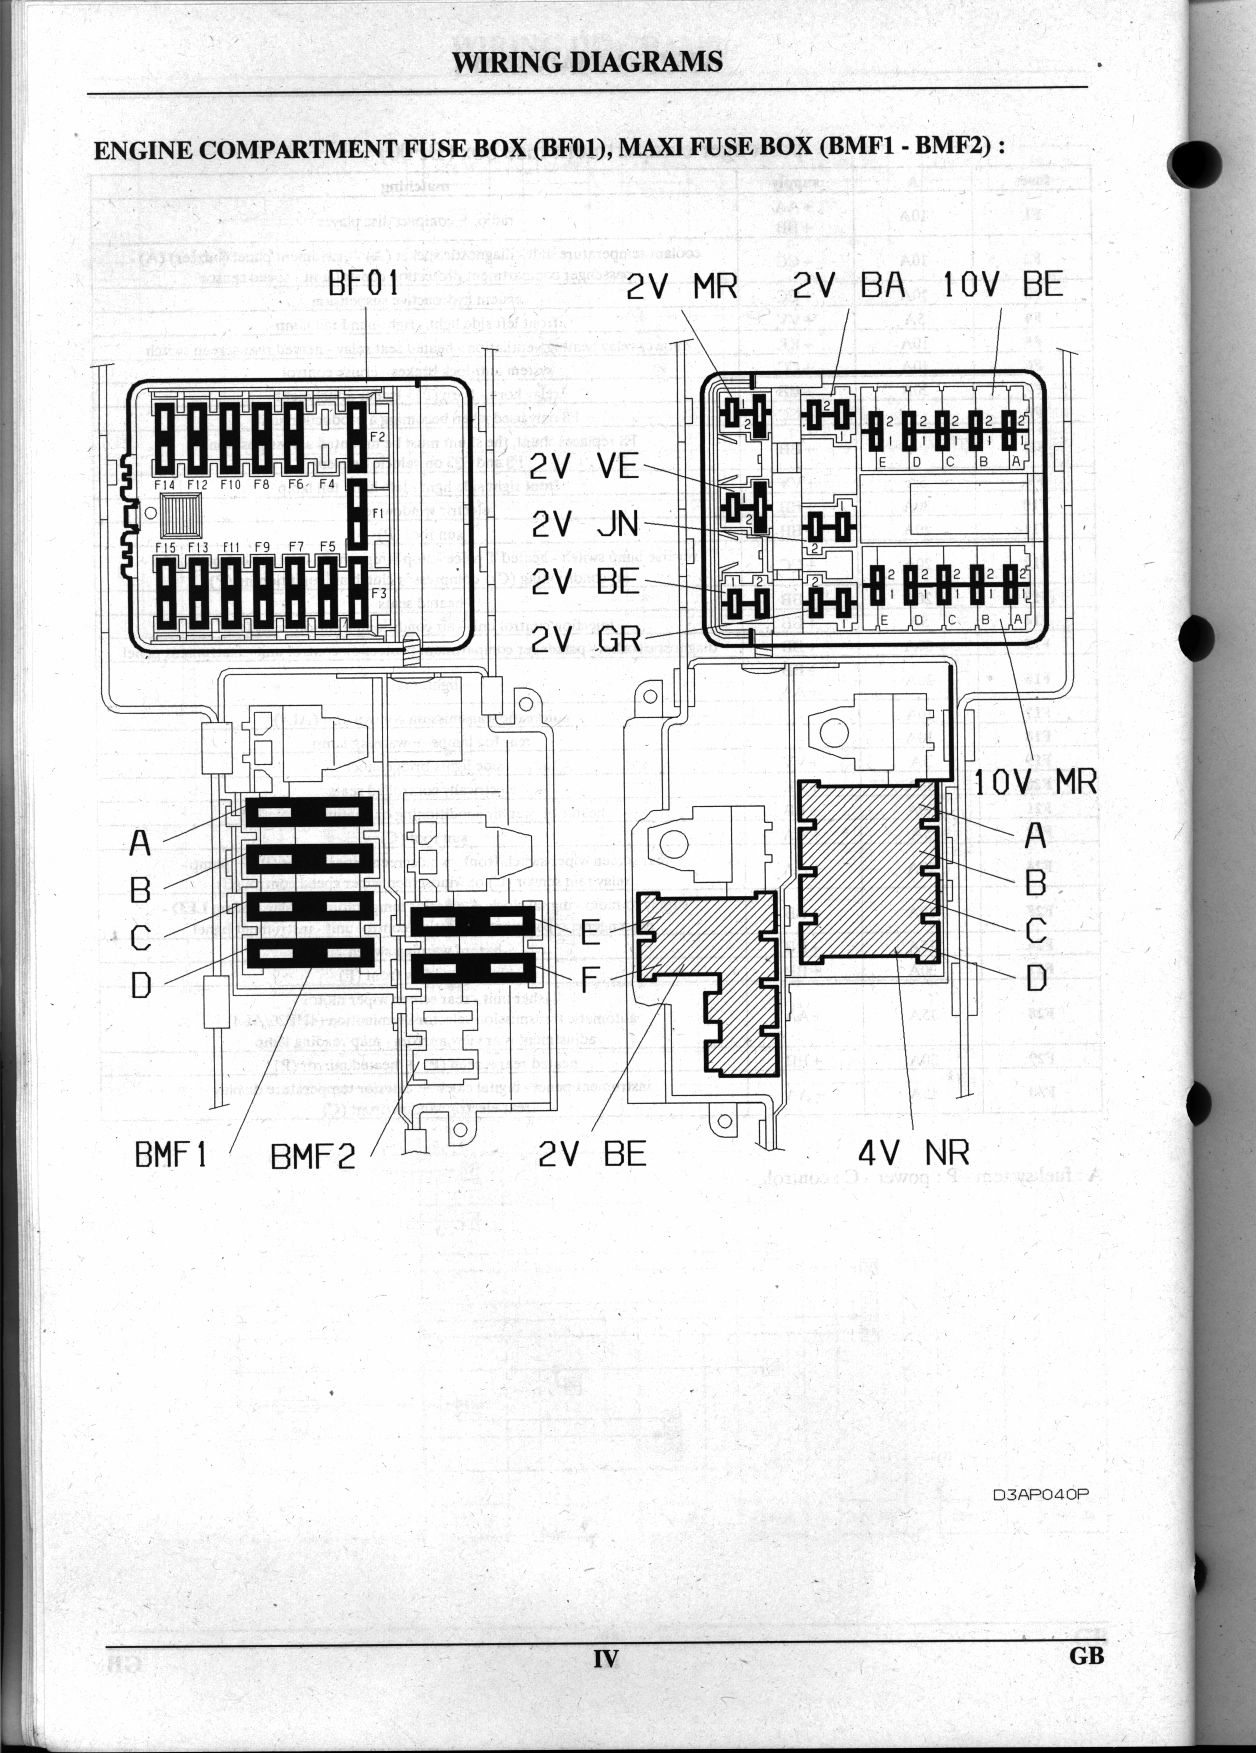 mk2ebfb_1 activa no2 she's slowly dying !!! page 2 french car forum citroen saxo 1.1 fuse box diagram at bayanpartner.co